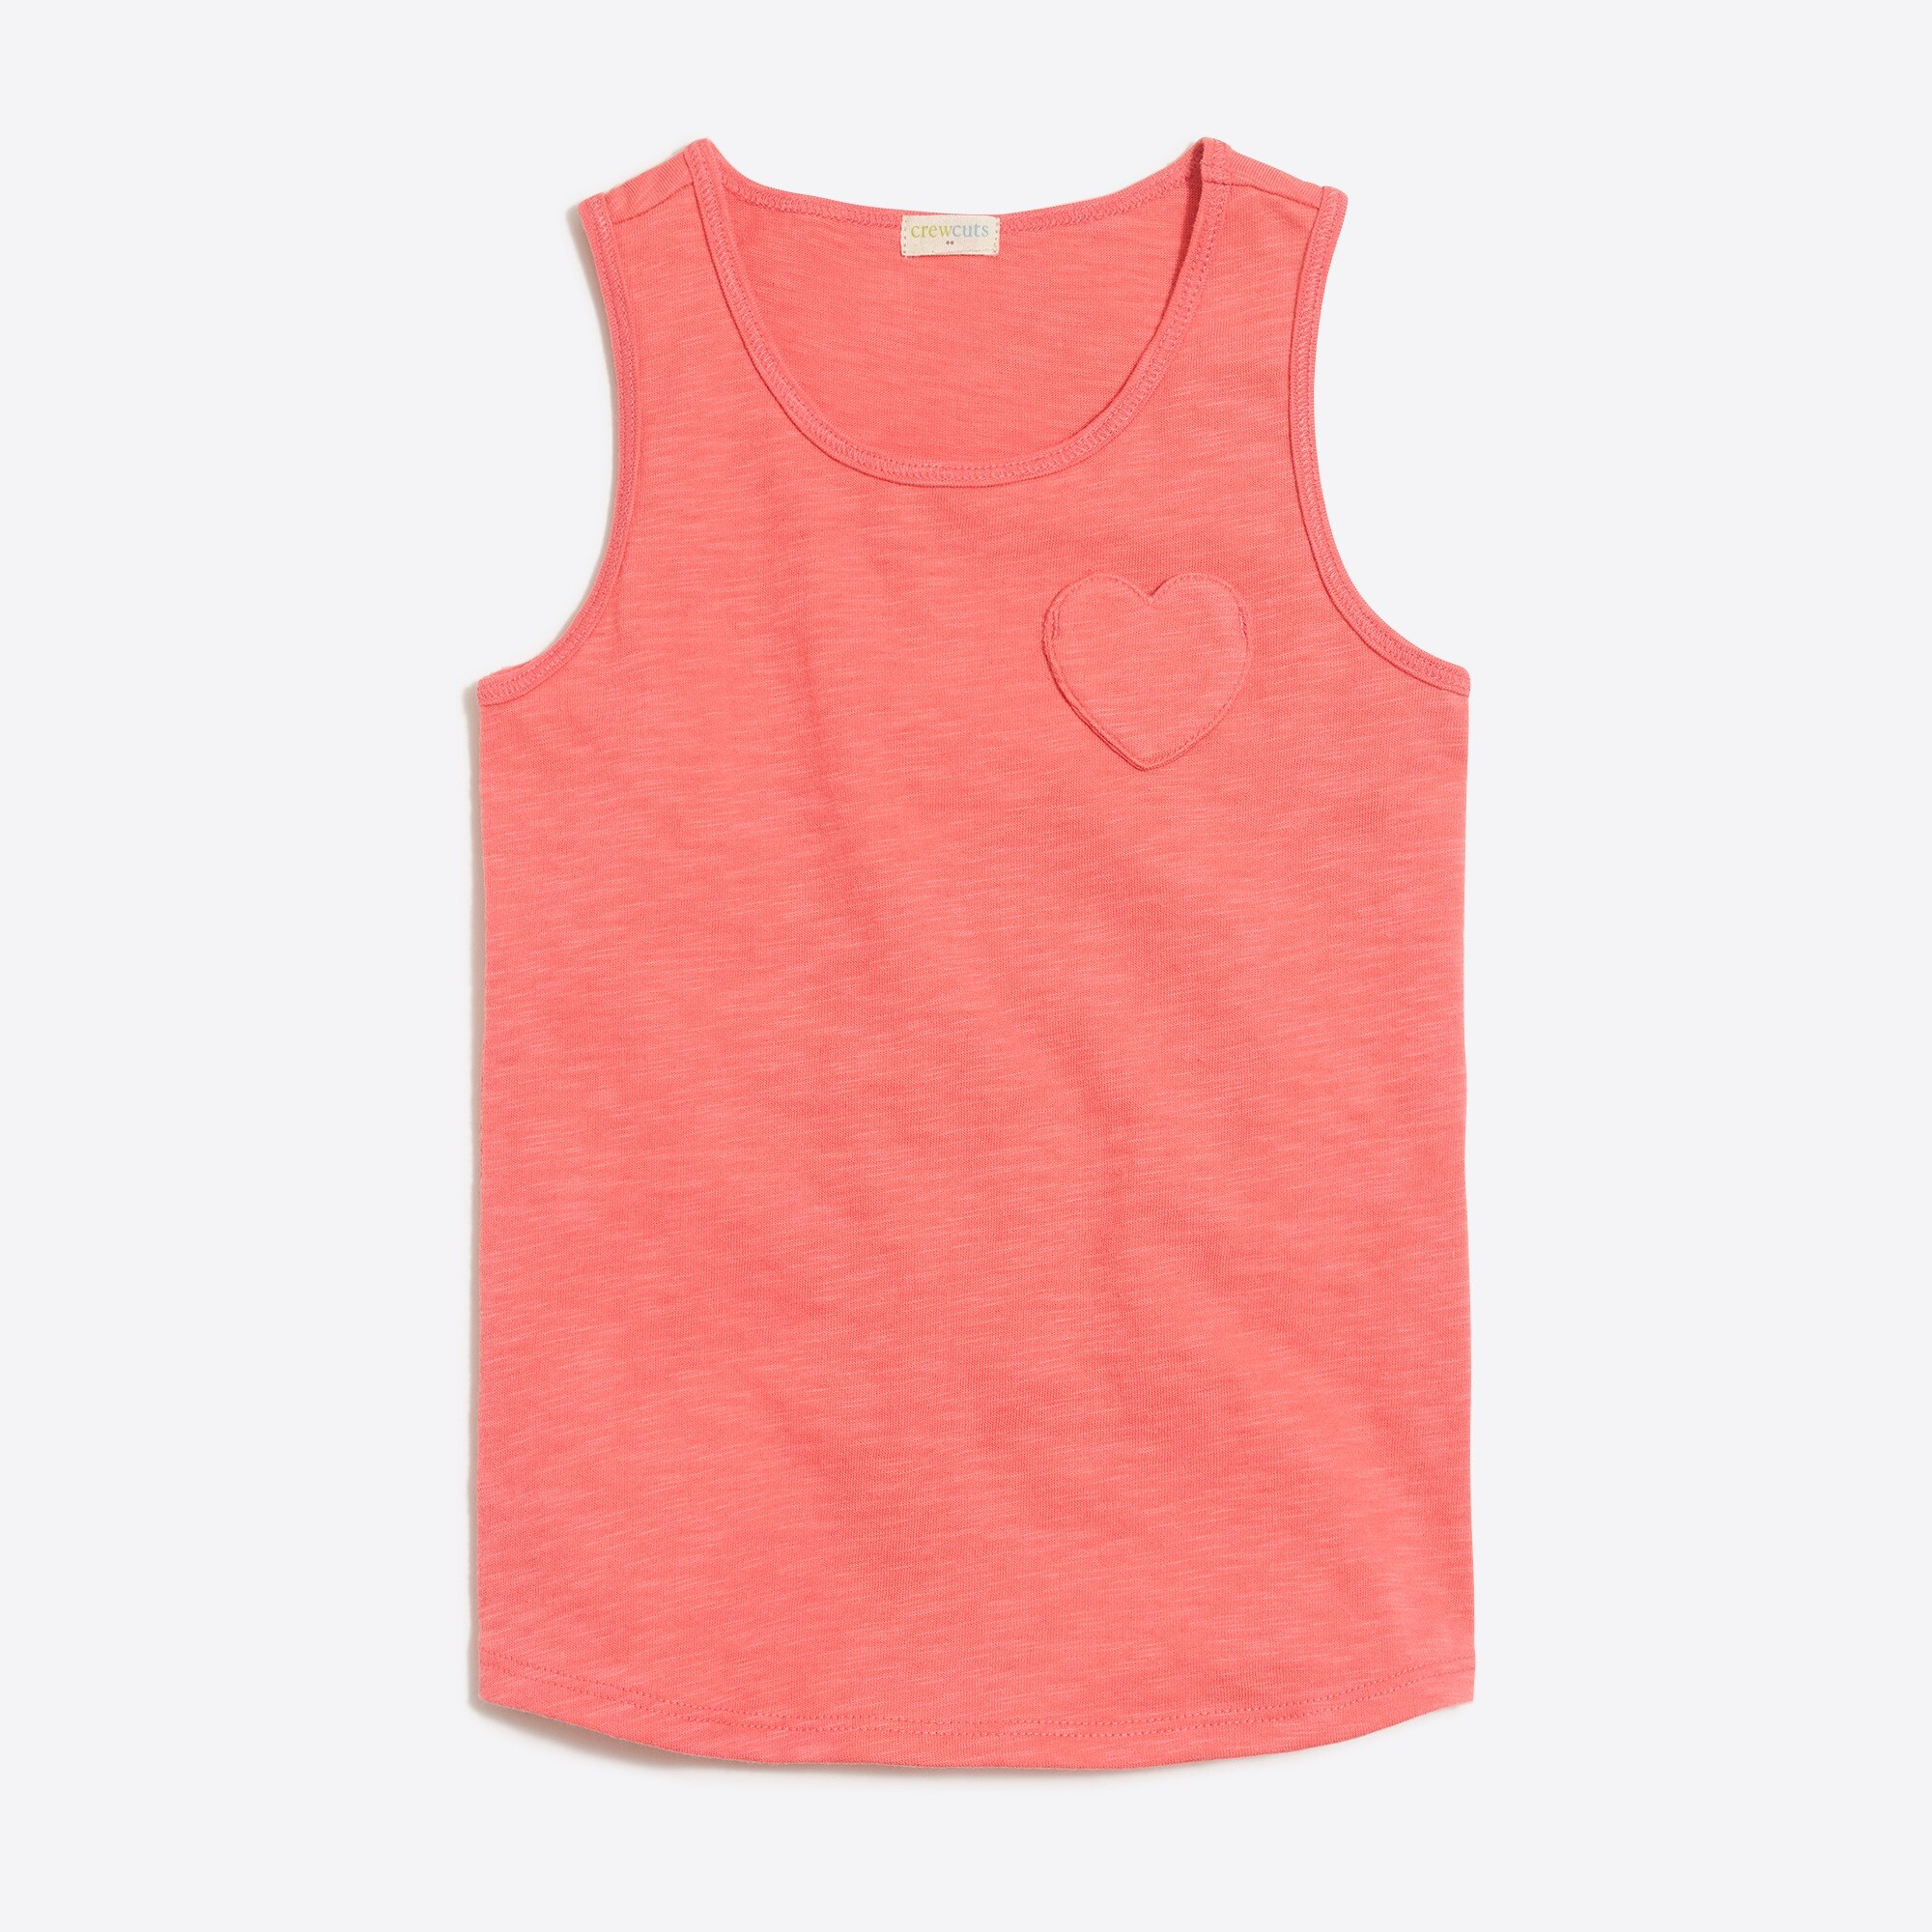 girls' heart pocket tank top : factorygirls tank tops